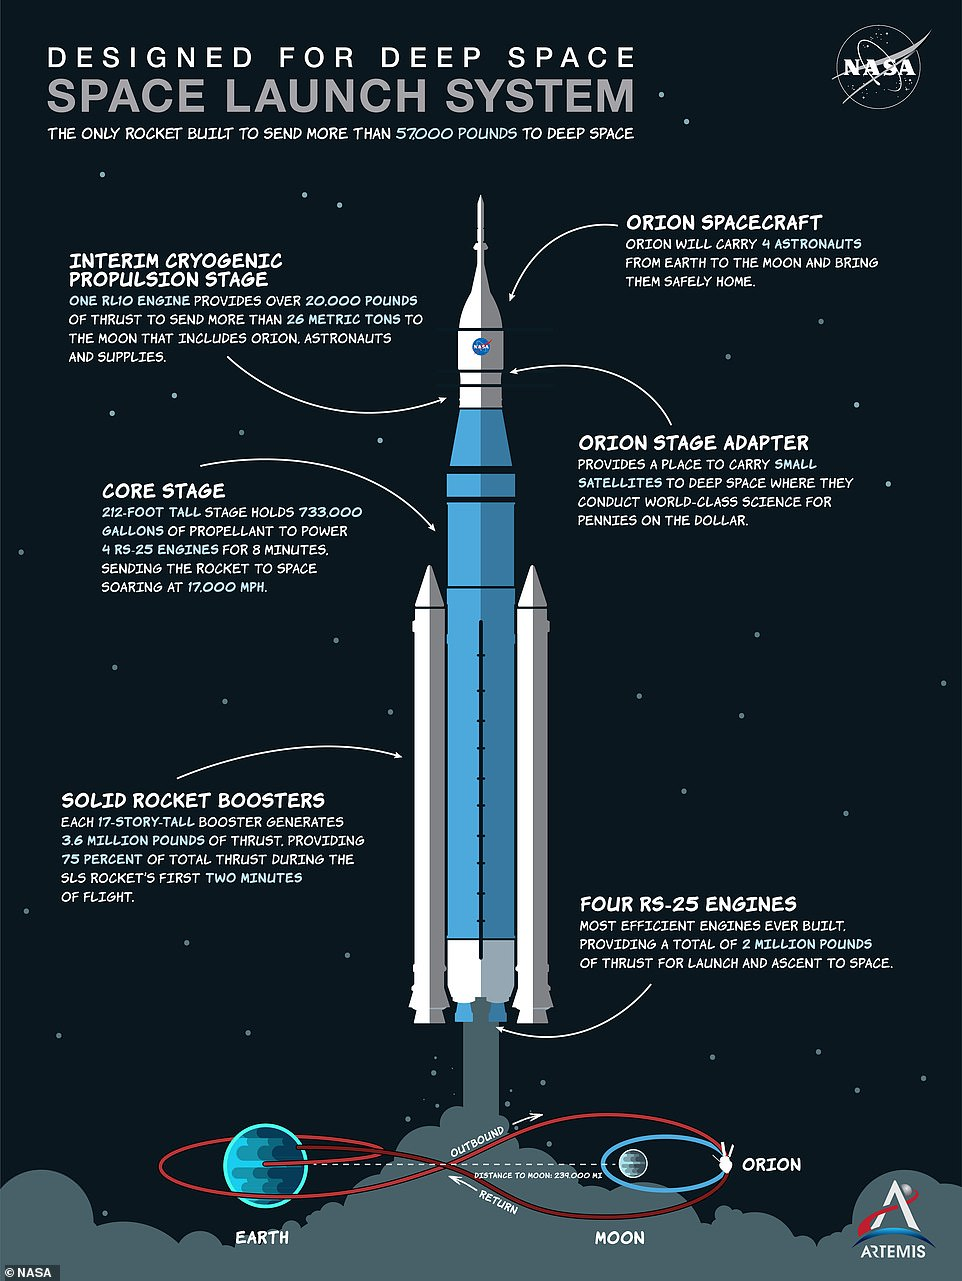 Getting the rocket off the ground for Artemis I in 2021 is critical to meet the 2024 target of landing the first woman and next man on the moon with Artemis III